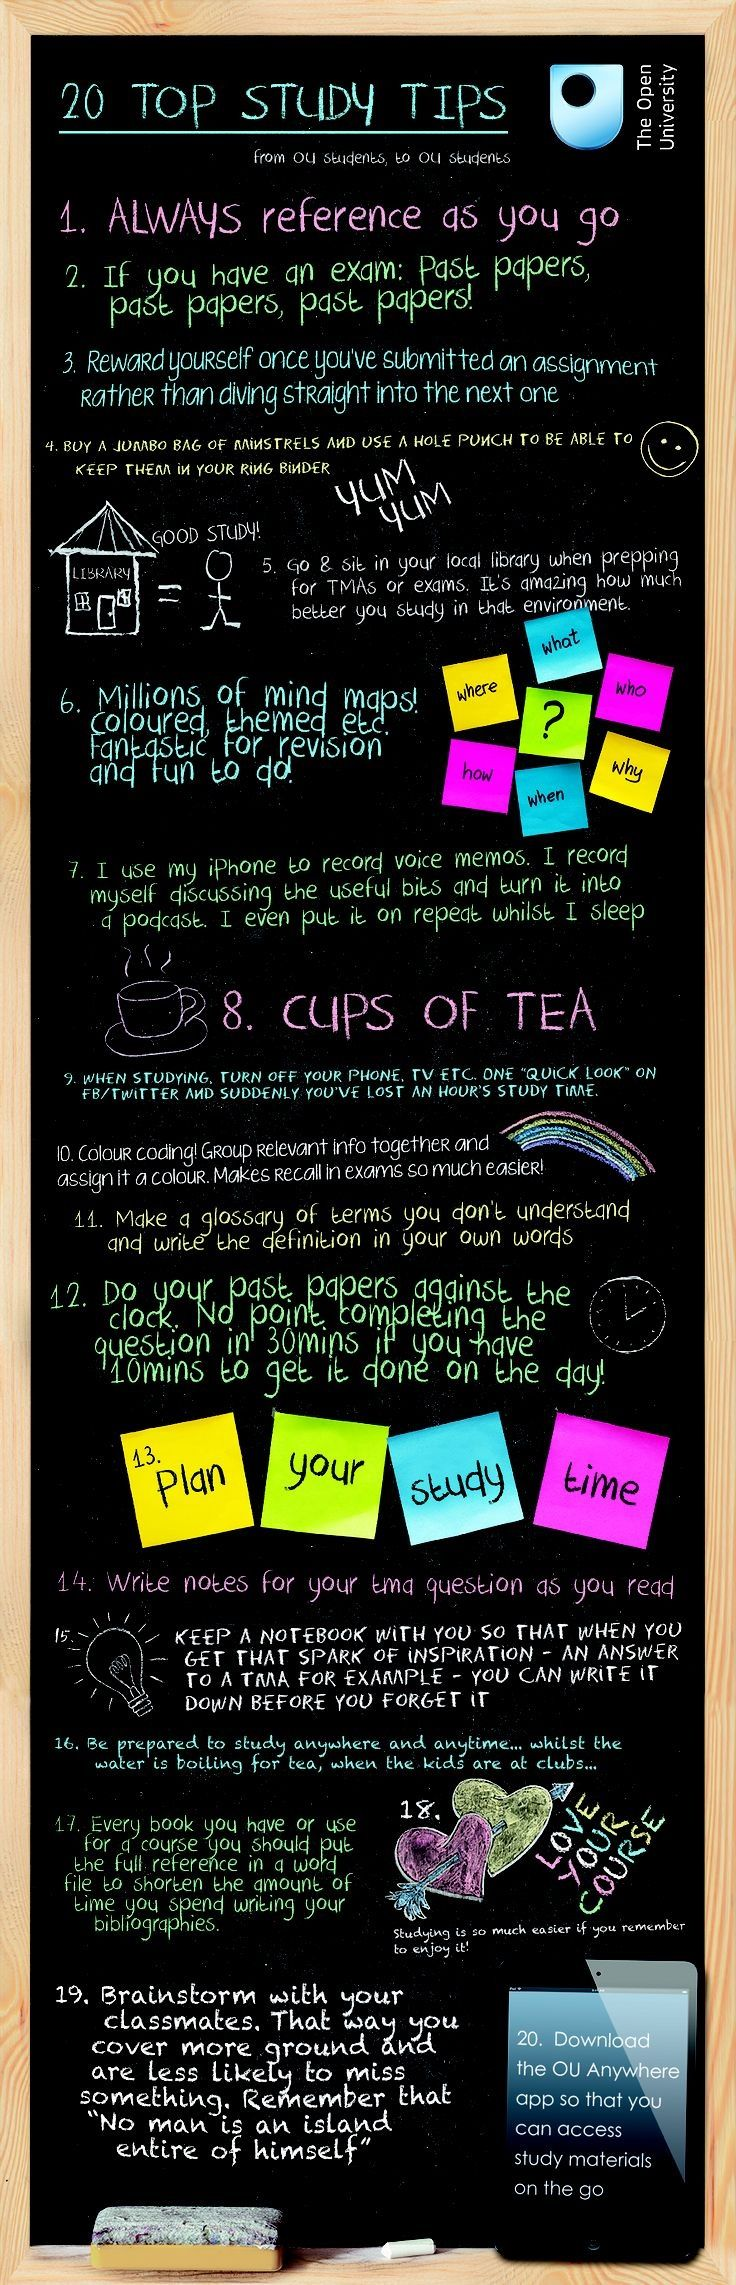 Study tips for middle and high school students.